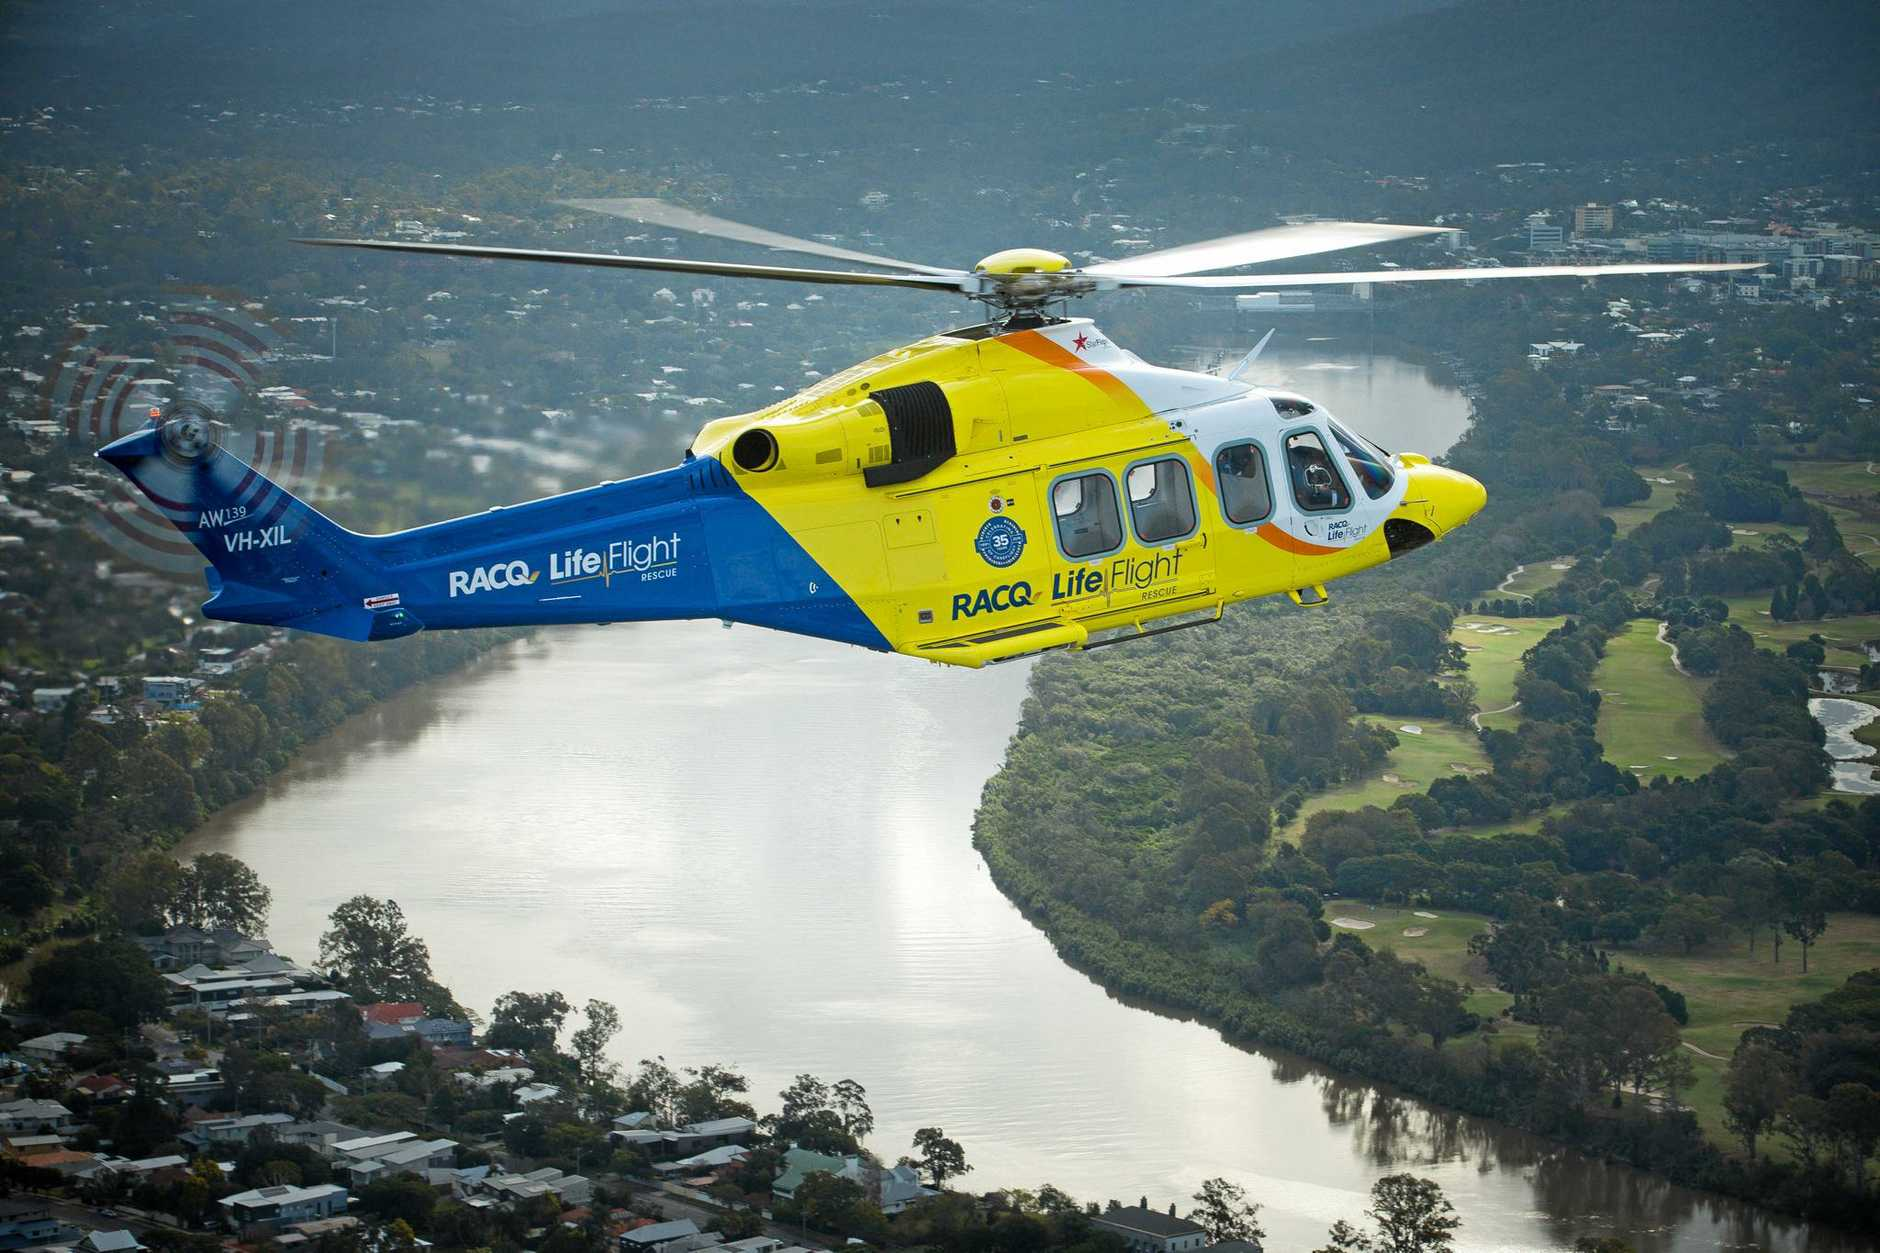 ONE of the RACQ LifeFlight helicopters on its way to a job.